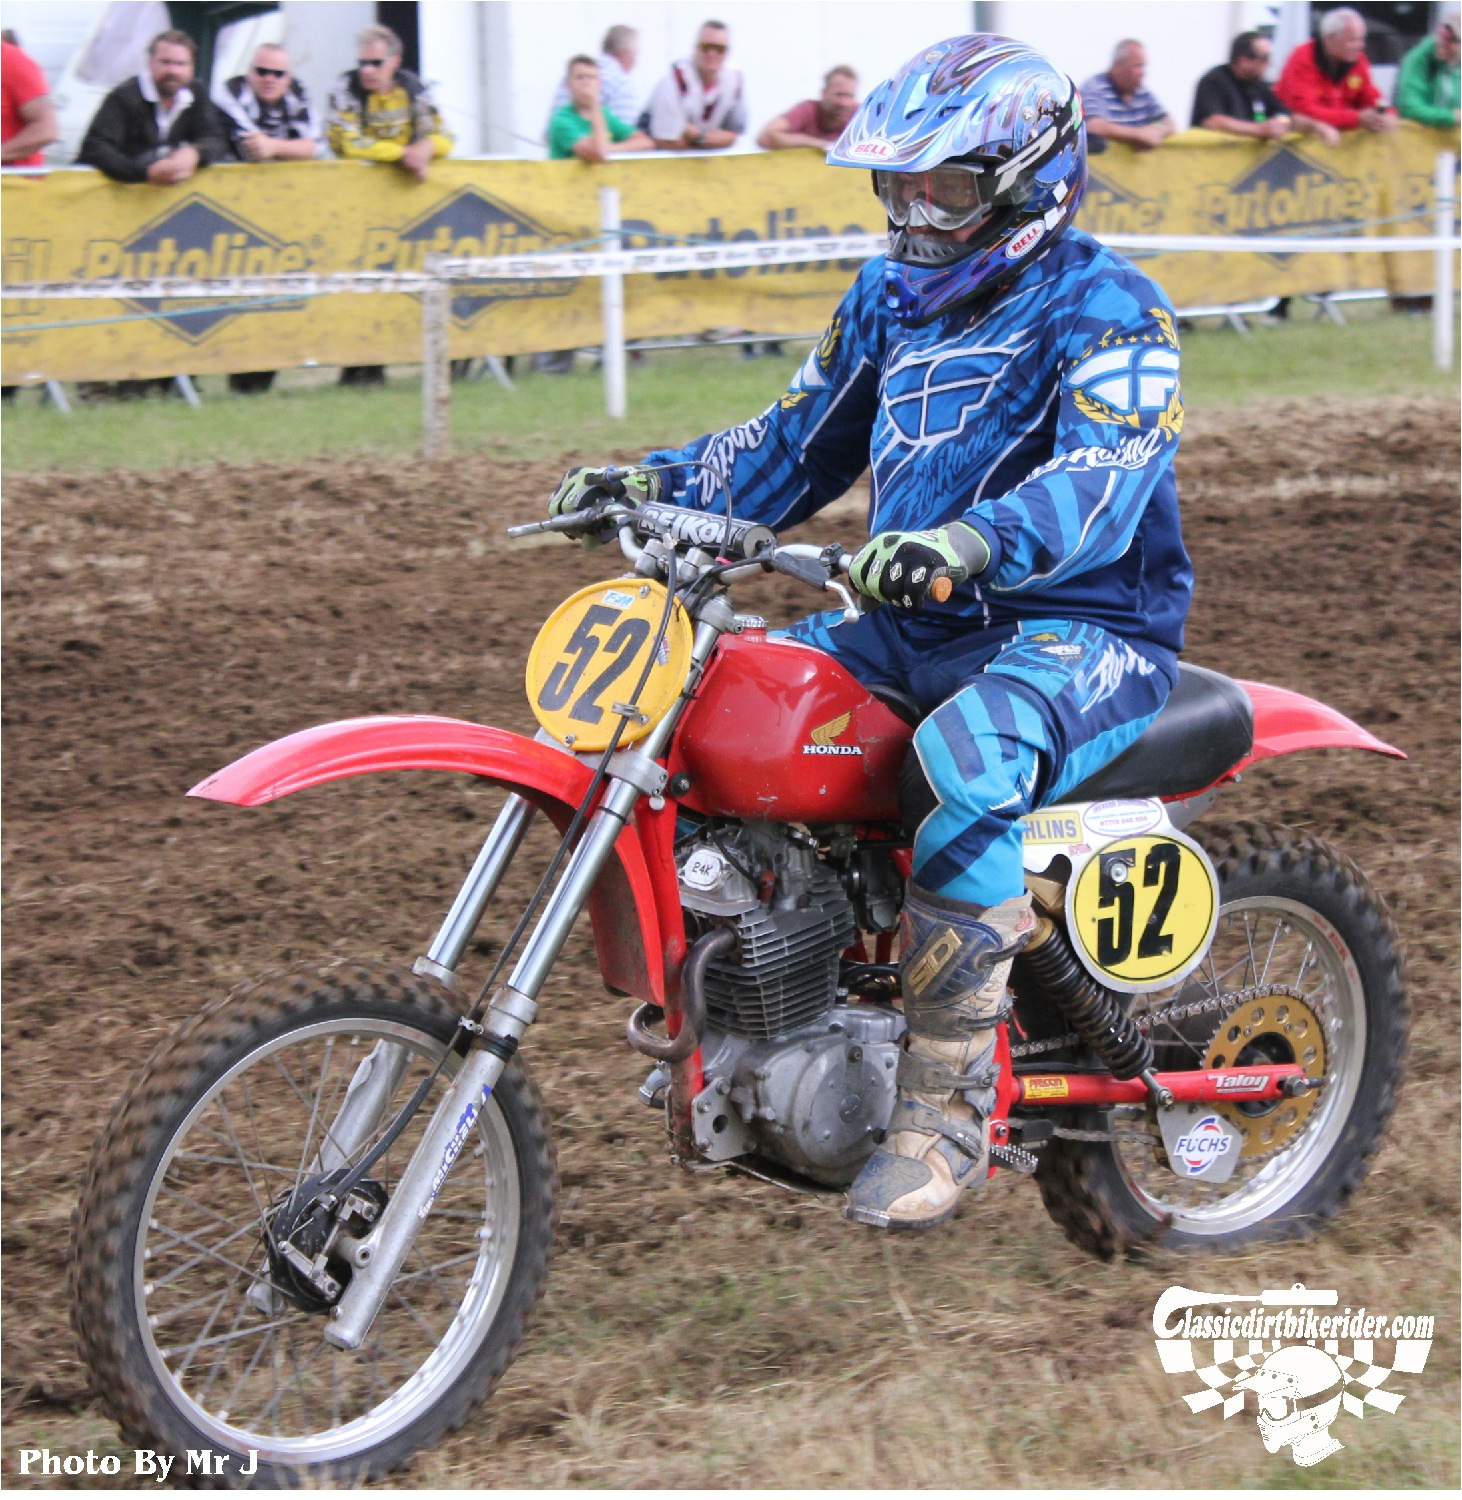 king of the castle 2015 photos Farleigh Castle twinshock motocross classicdirtbikerider.com 35